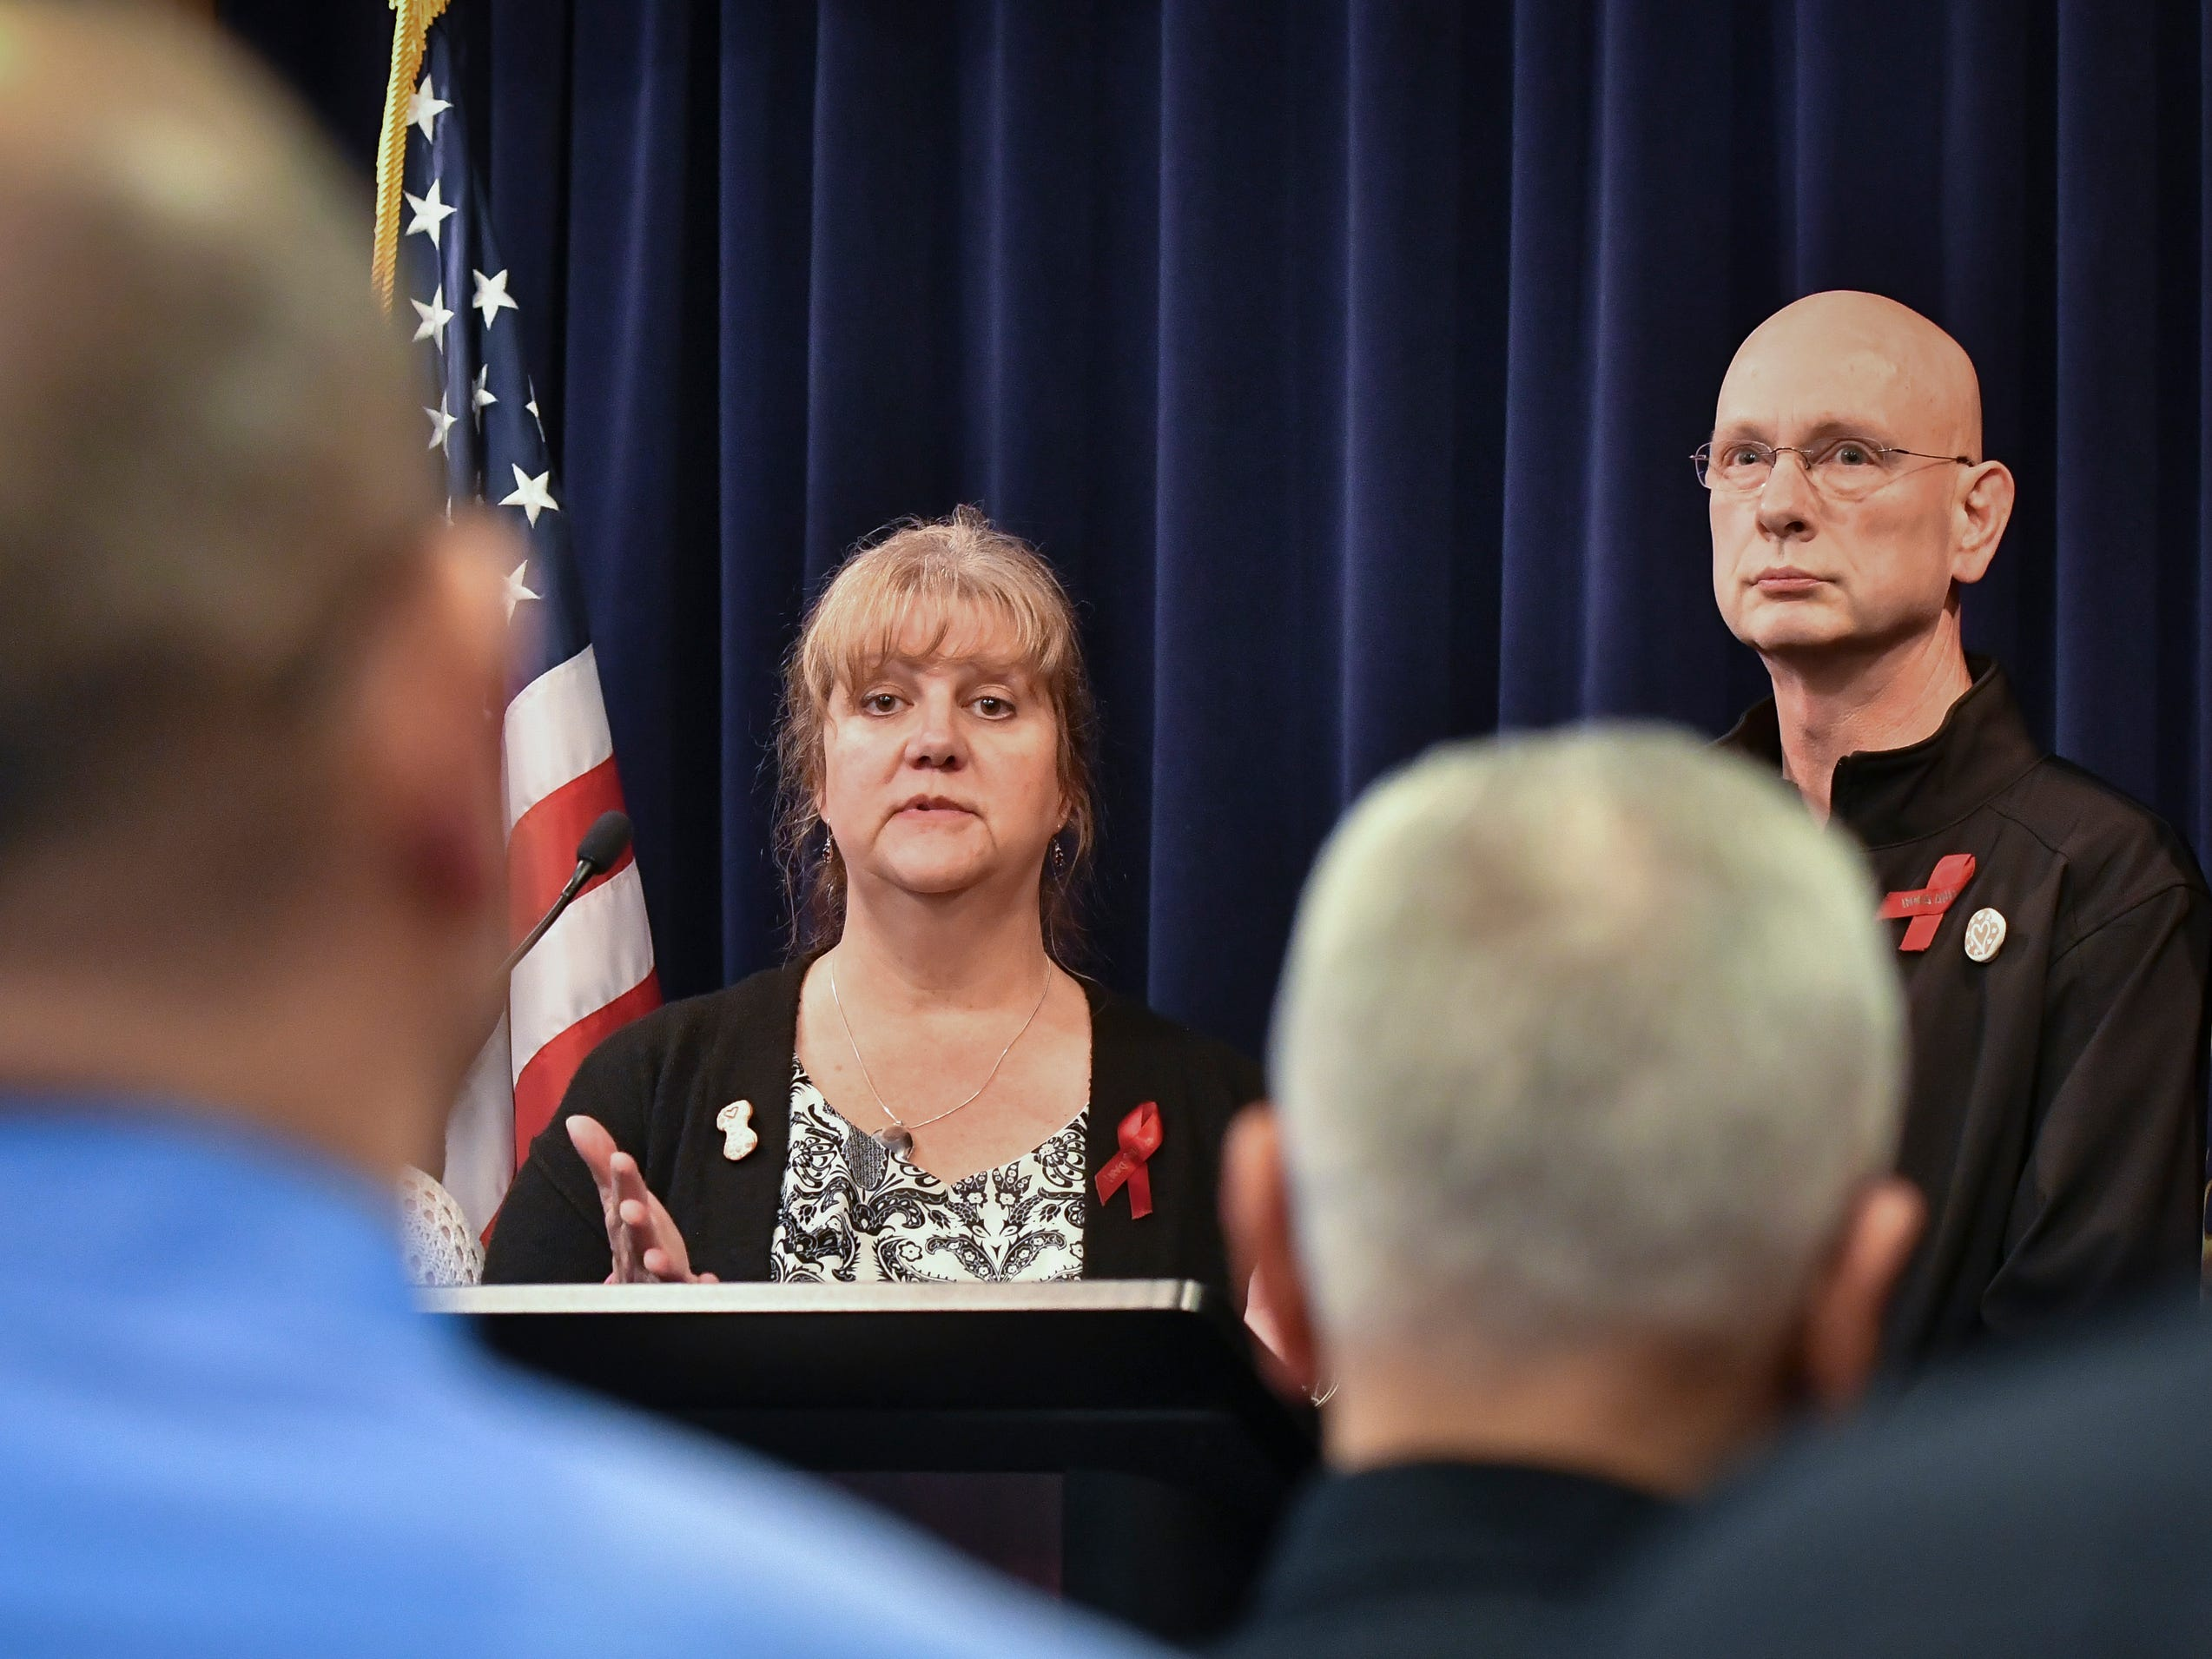 Ann and Richard Stislicki thank law enforcement and the Attorney General's office for their work, Tuesday, March 5, 2019, in downtown Lansing, related to the disappearance of their daughter Danielle.  Attorney General Dana Nessel filed first degree pre-meditated murder against Floyd Calloway, Jr., for the murder of Danielle Stislicki.  The 28-year-old disappeared from a parking lot in Dec. of 2016, and has never been found.